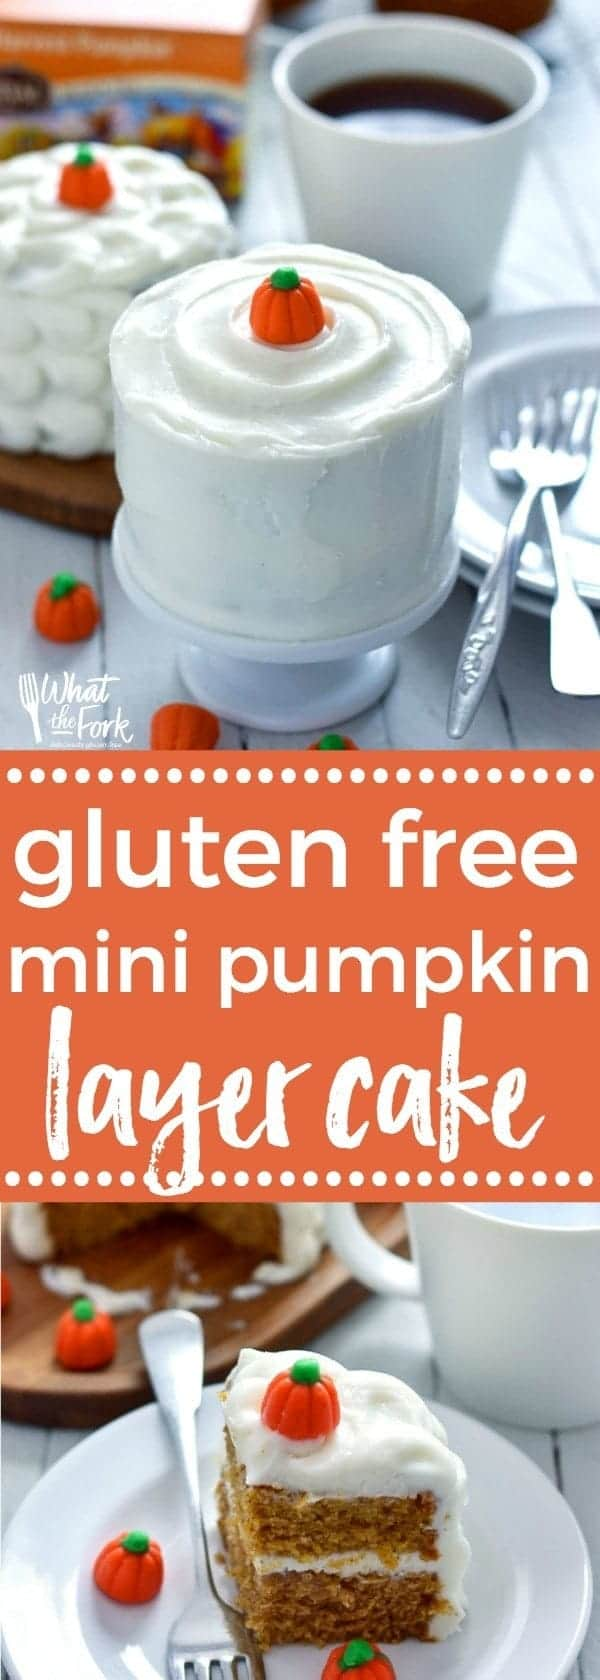 Gluten Free Mini Pumpkin Cake recipe from @whattheforkblog | whattheforkfoodblog.com | sponsored by Celestial Seasonings | gluten free and dairy free | gluten free cake | dairy free cake | gluten free desserts | gluten free pumpkin cake | gluten free pumpkin recipes | recipes with pumpkin | recipes for leftover pumpkin | pumpkin recipes | easy pumpkin recipes | small batch recipes | mini cakes | how to make mini cakes | how to make pumpkin cake | how to make cake in a ramekin